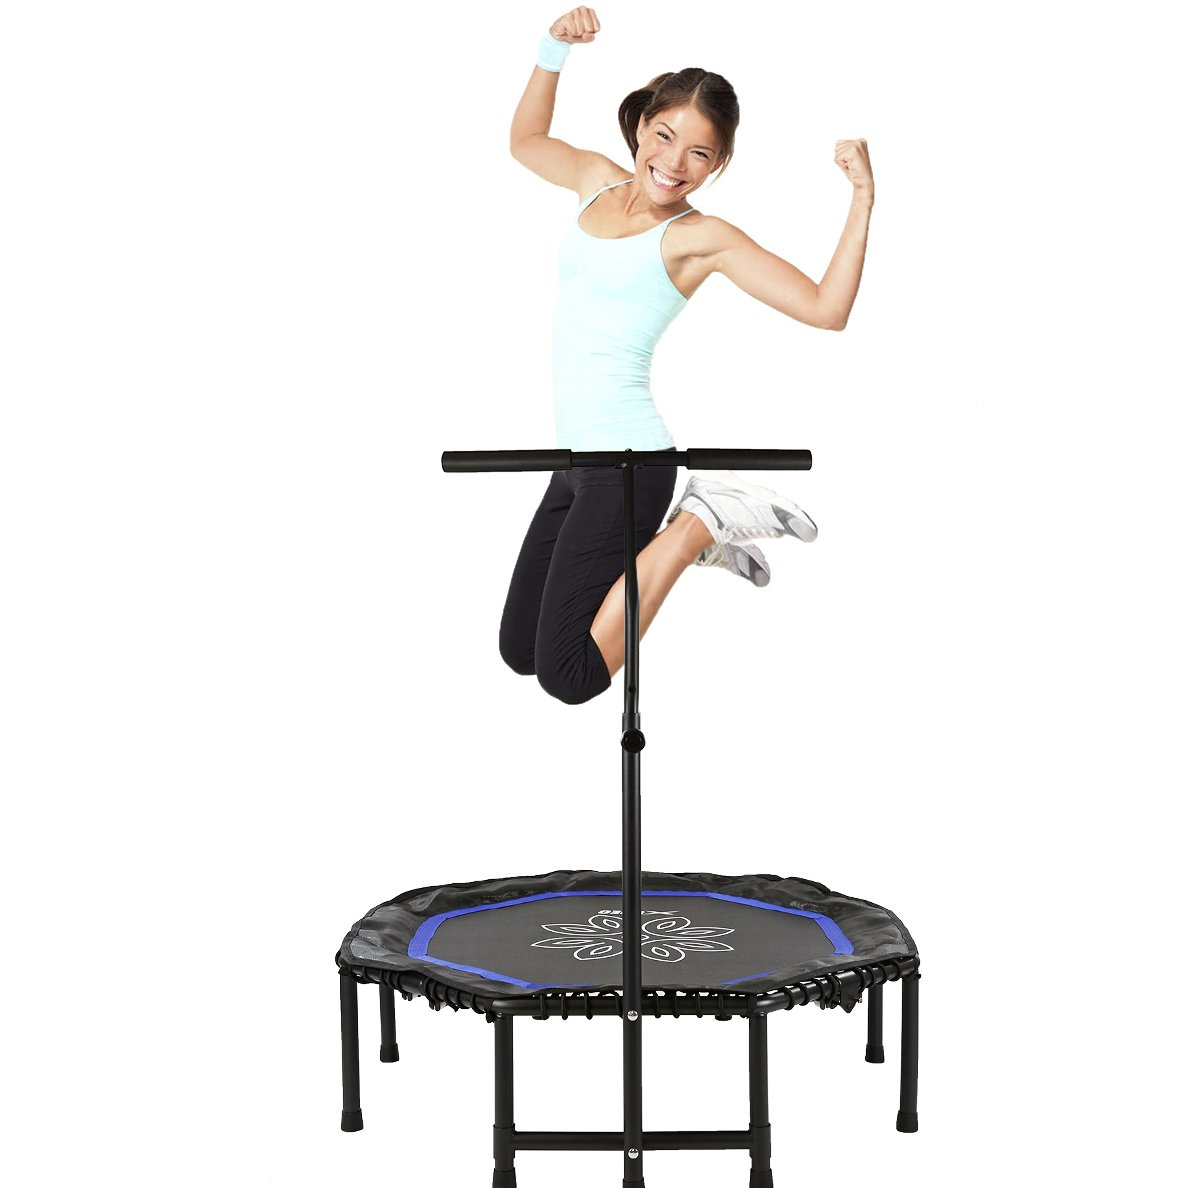 Best Mini Trampolines With Handlebars For Adults » Best